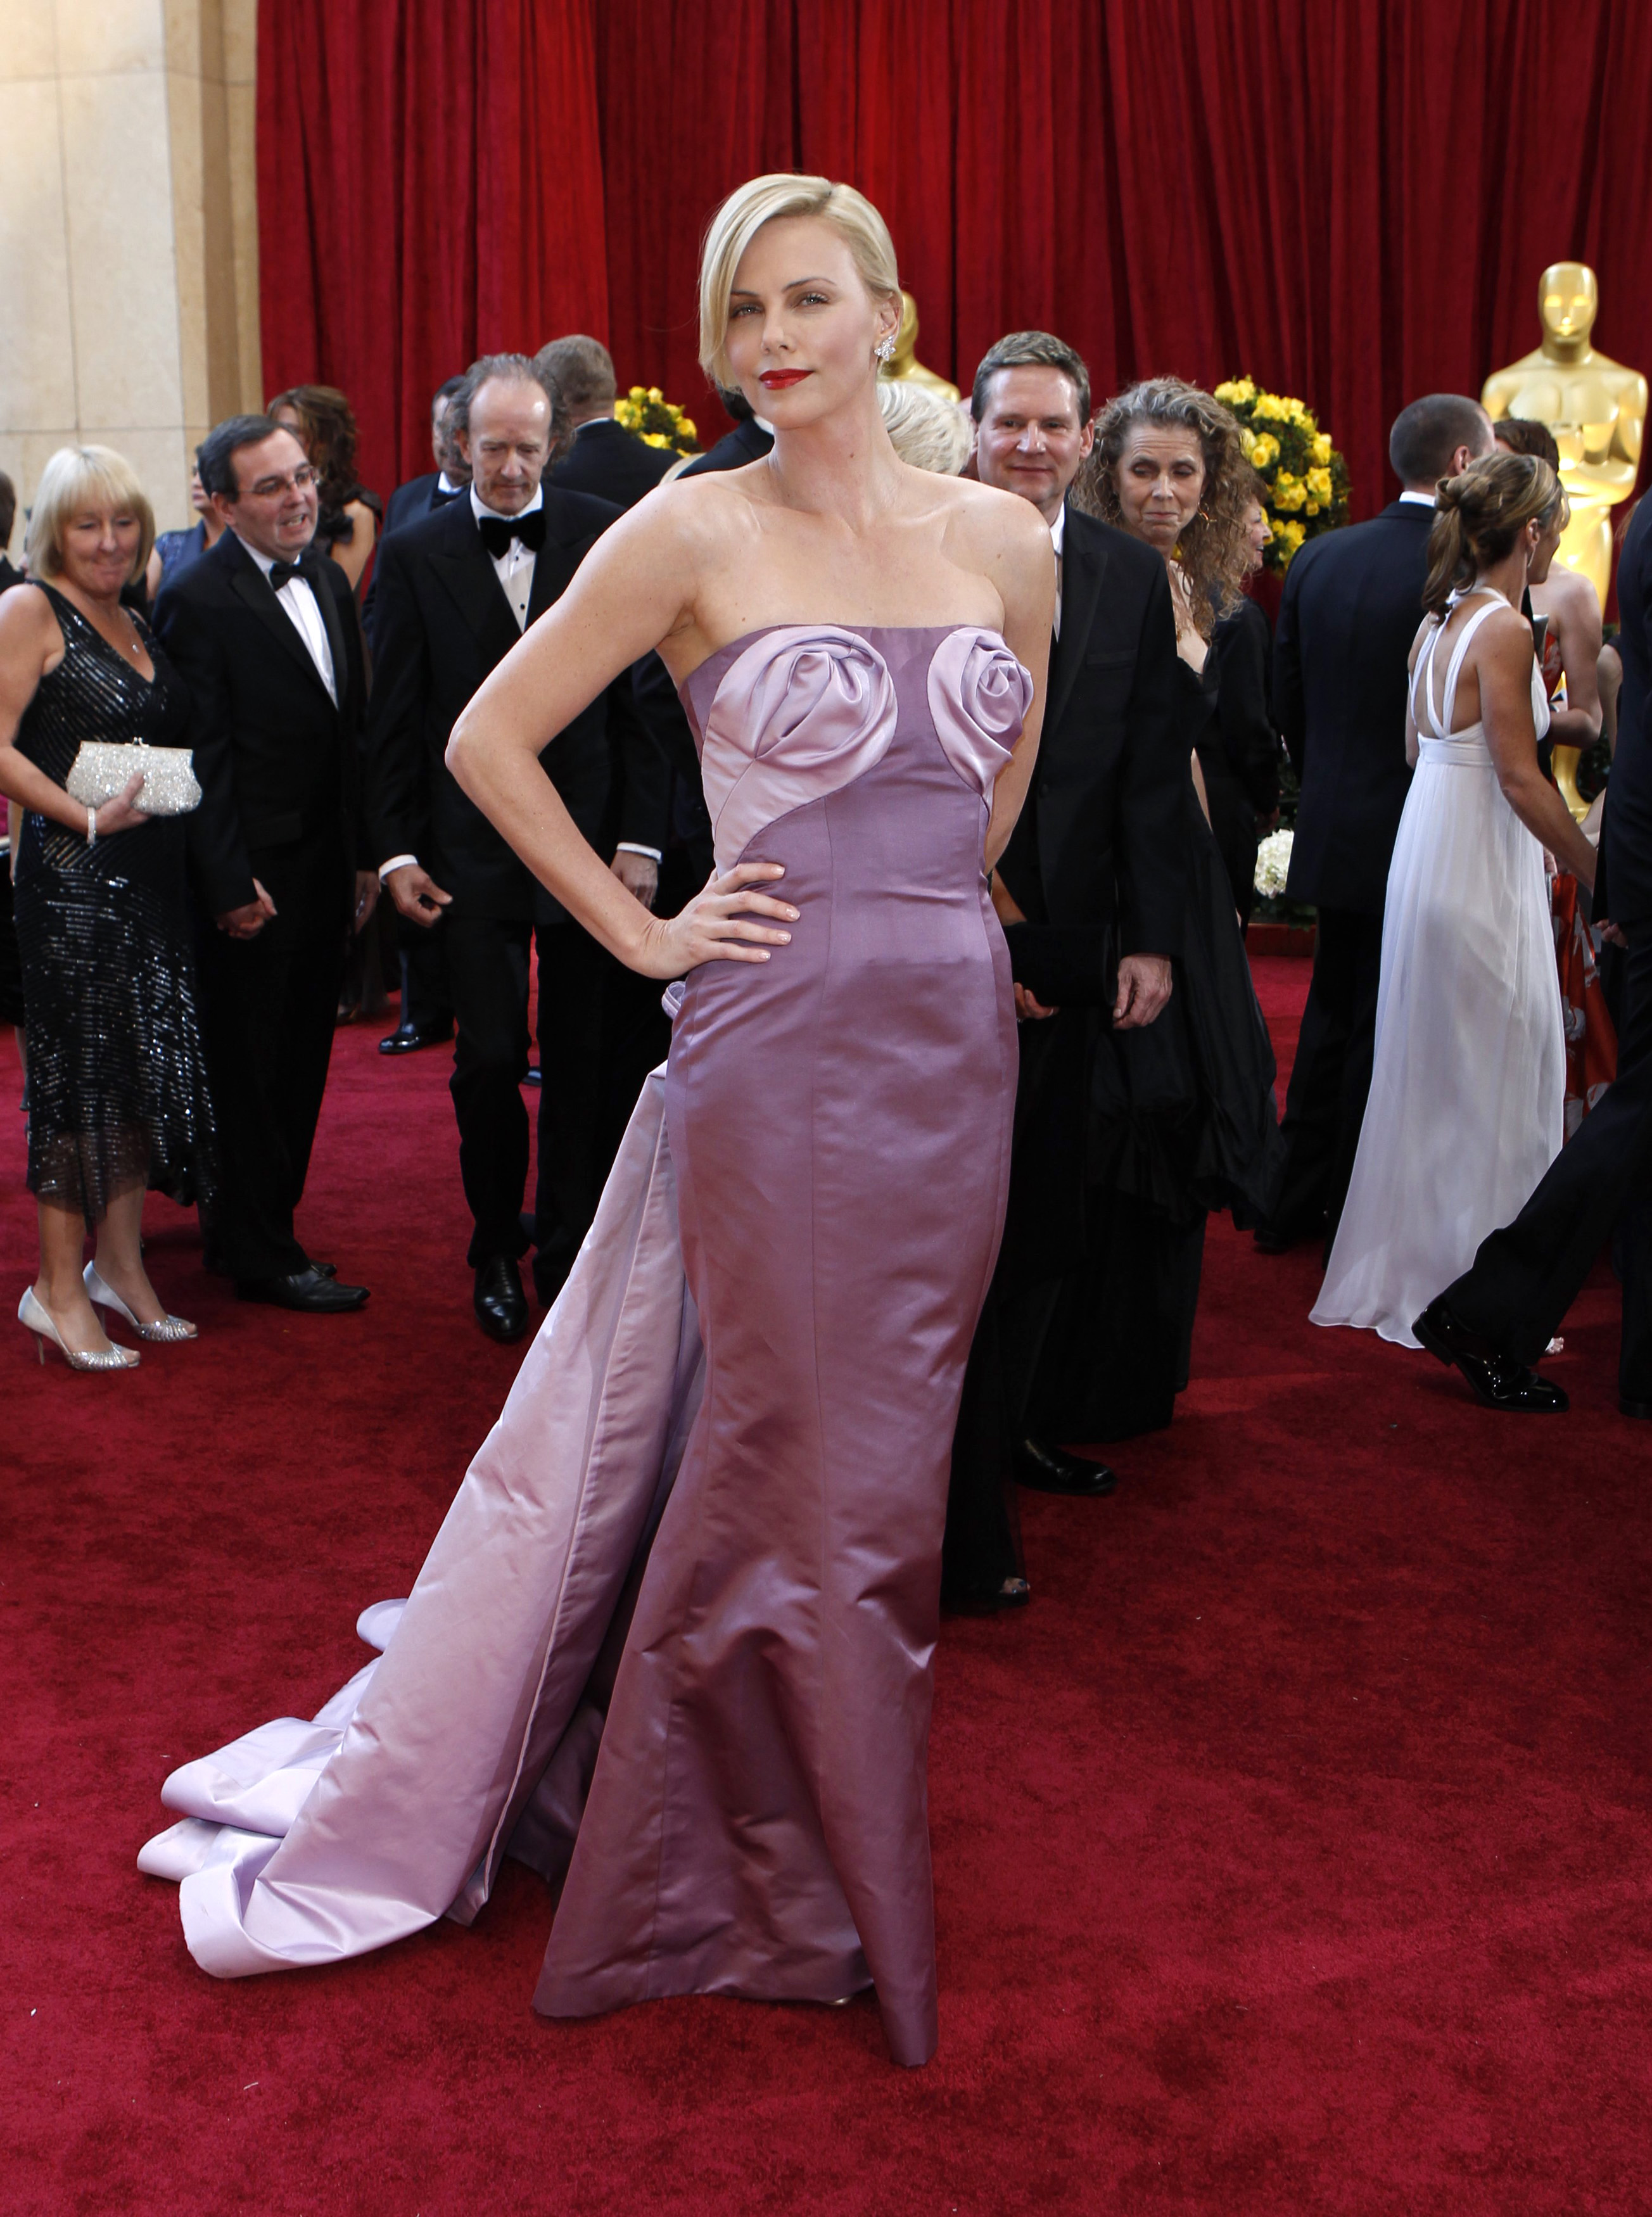 South African actress and Oscar presenter Charlize Theron arrives on the red carpet at the 82nd Academy Awards in Hollywood March 7, 2010. REUTERS/Lucas Jackson   (UNITED STATES)   (OSCARS-ARRIVALS - Tags: ENTERTAINMENT) - GM1E6380QE201